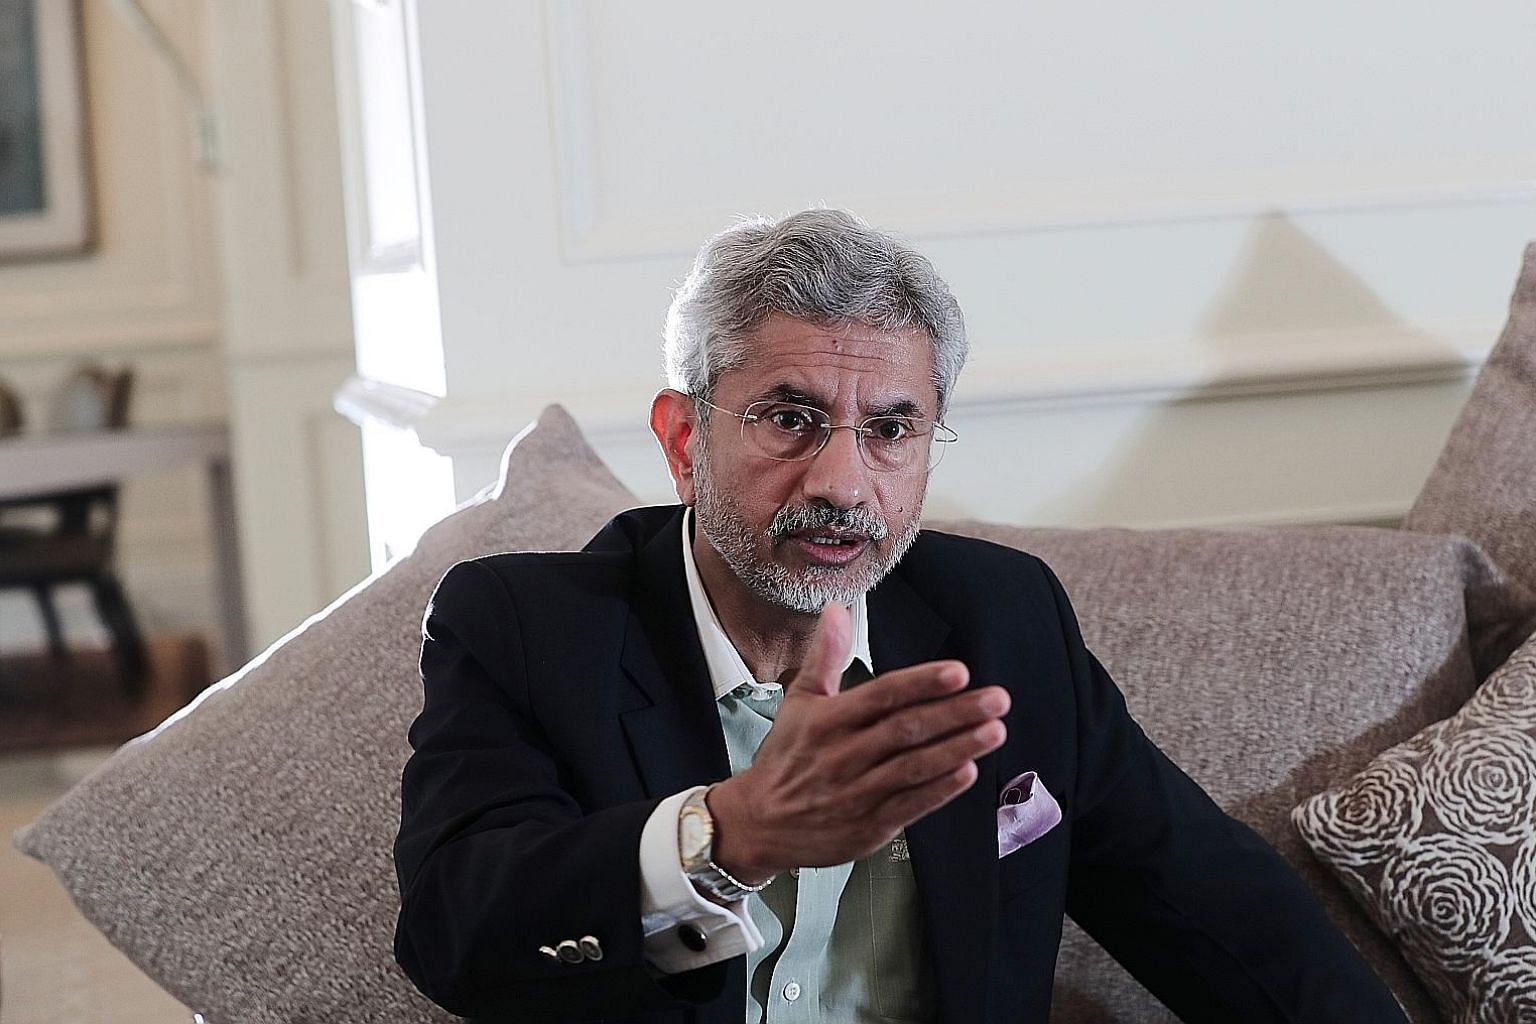 Indian Foreign Minister Subrahmanyam Jaishankar is on a five-day visit to Singapore, where he will review bilateral issues with Foreign Minister Vivian Balakrishnan and meet other leaders. ST PHOTO: KELVIN CHNG